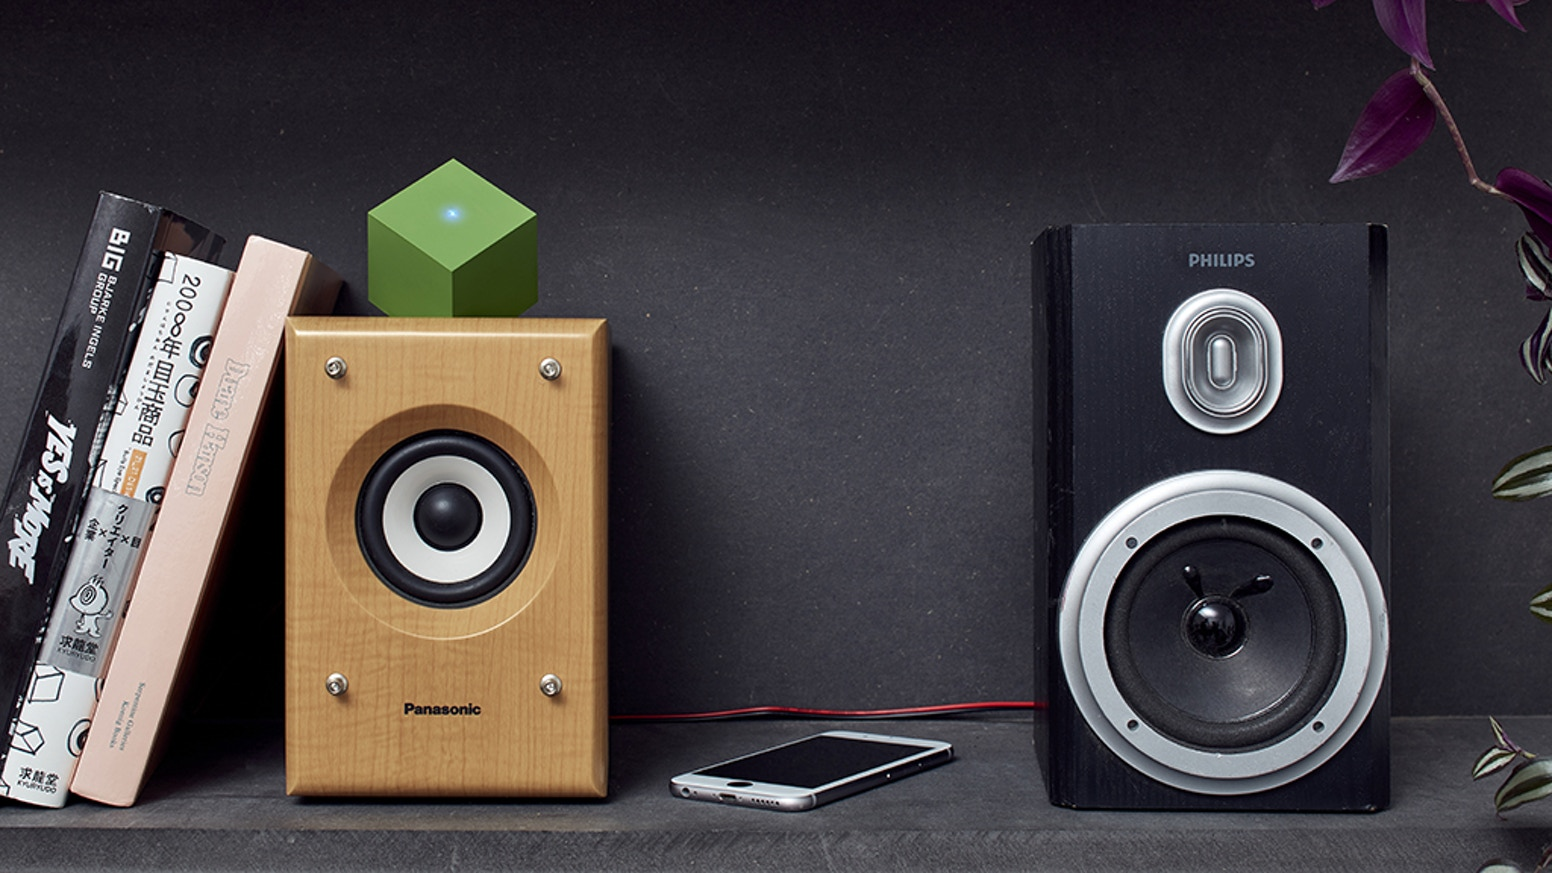 Bring back the sound to your own vintage speakers with The Vamp Stereo + The Vamp Speaker and lessen electronic waste.